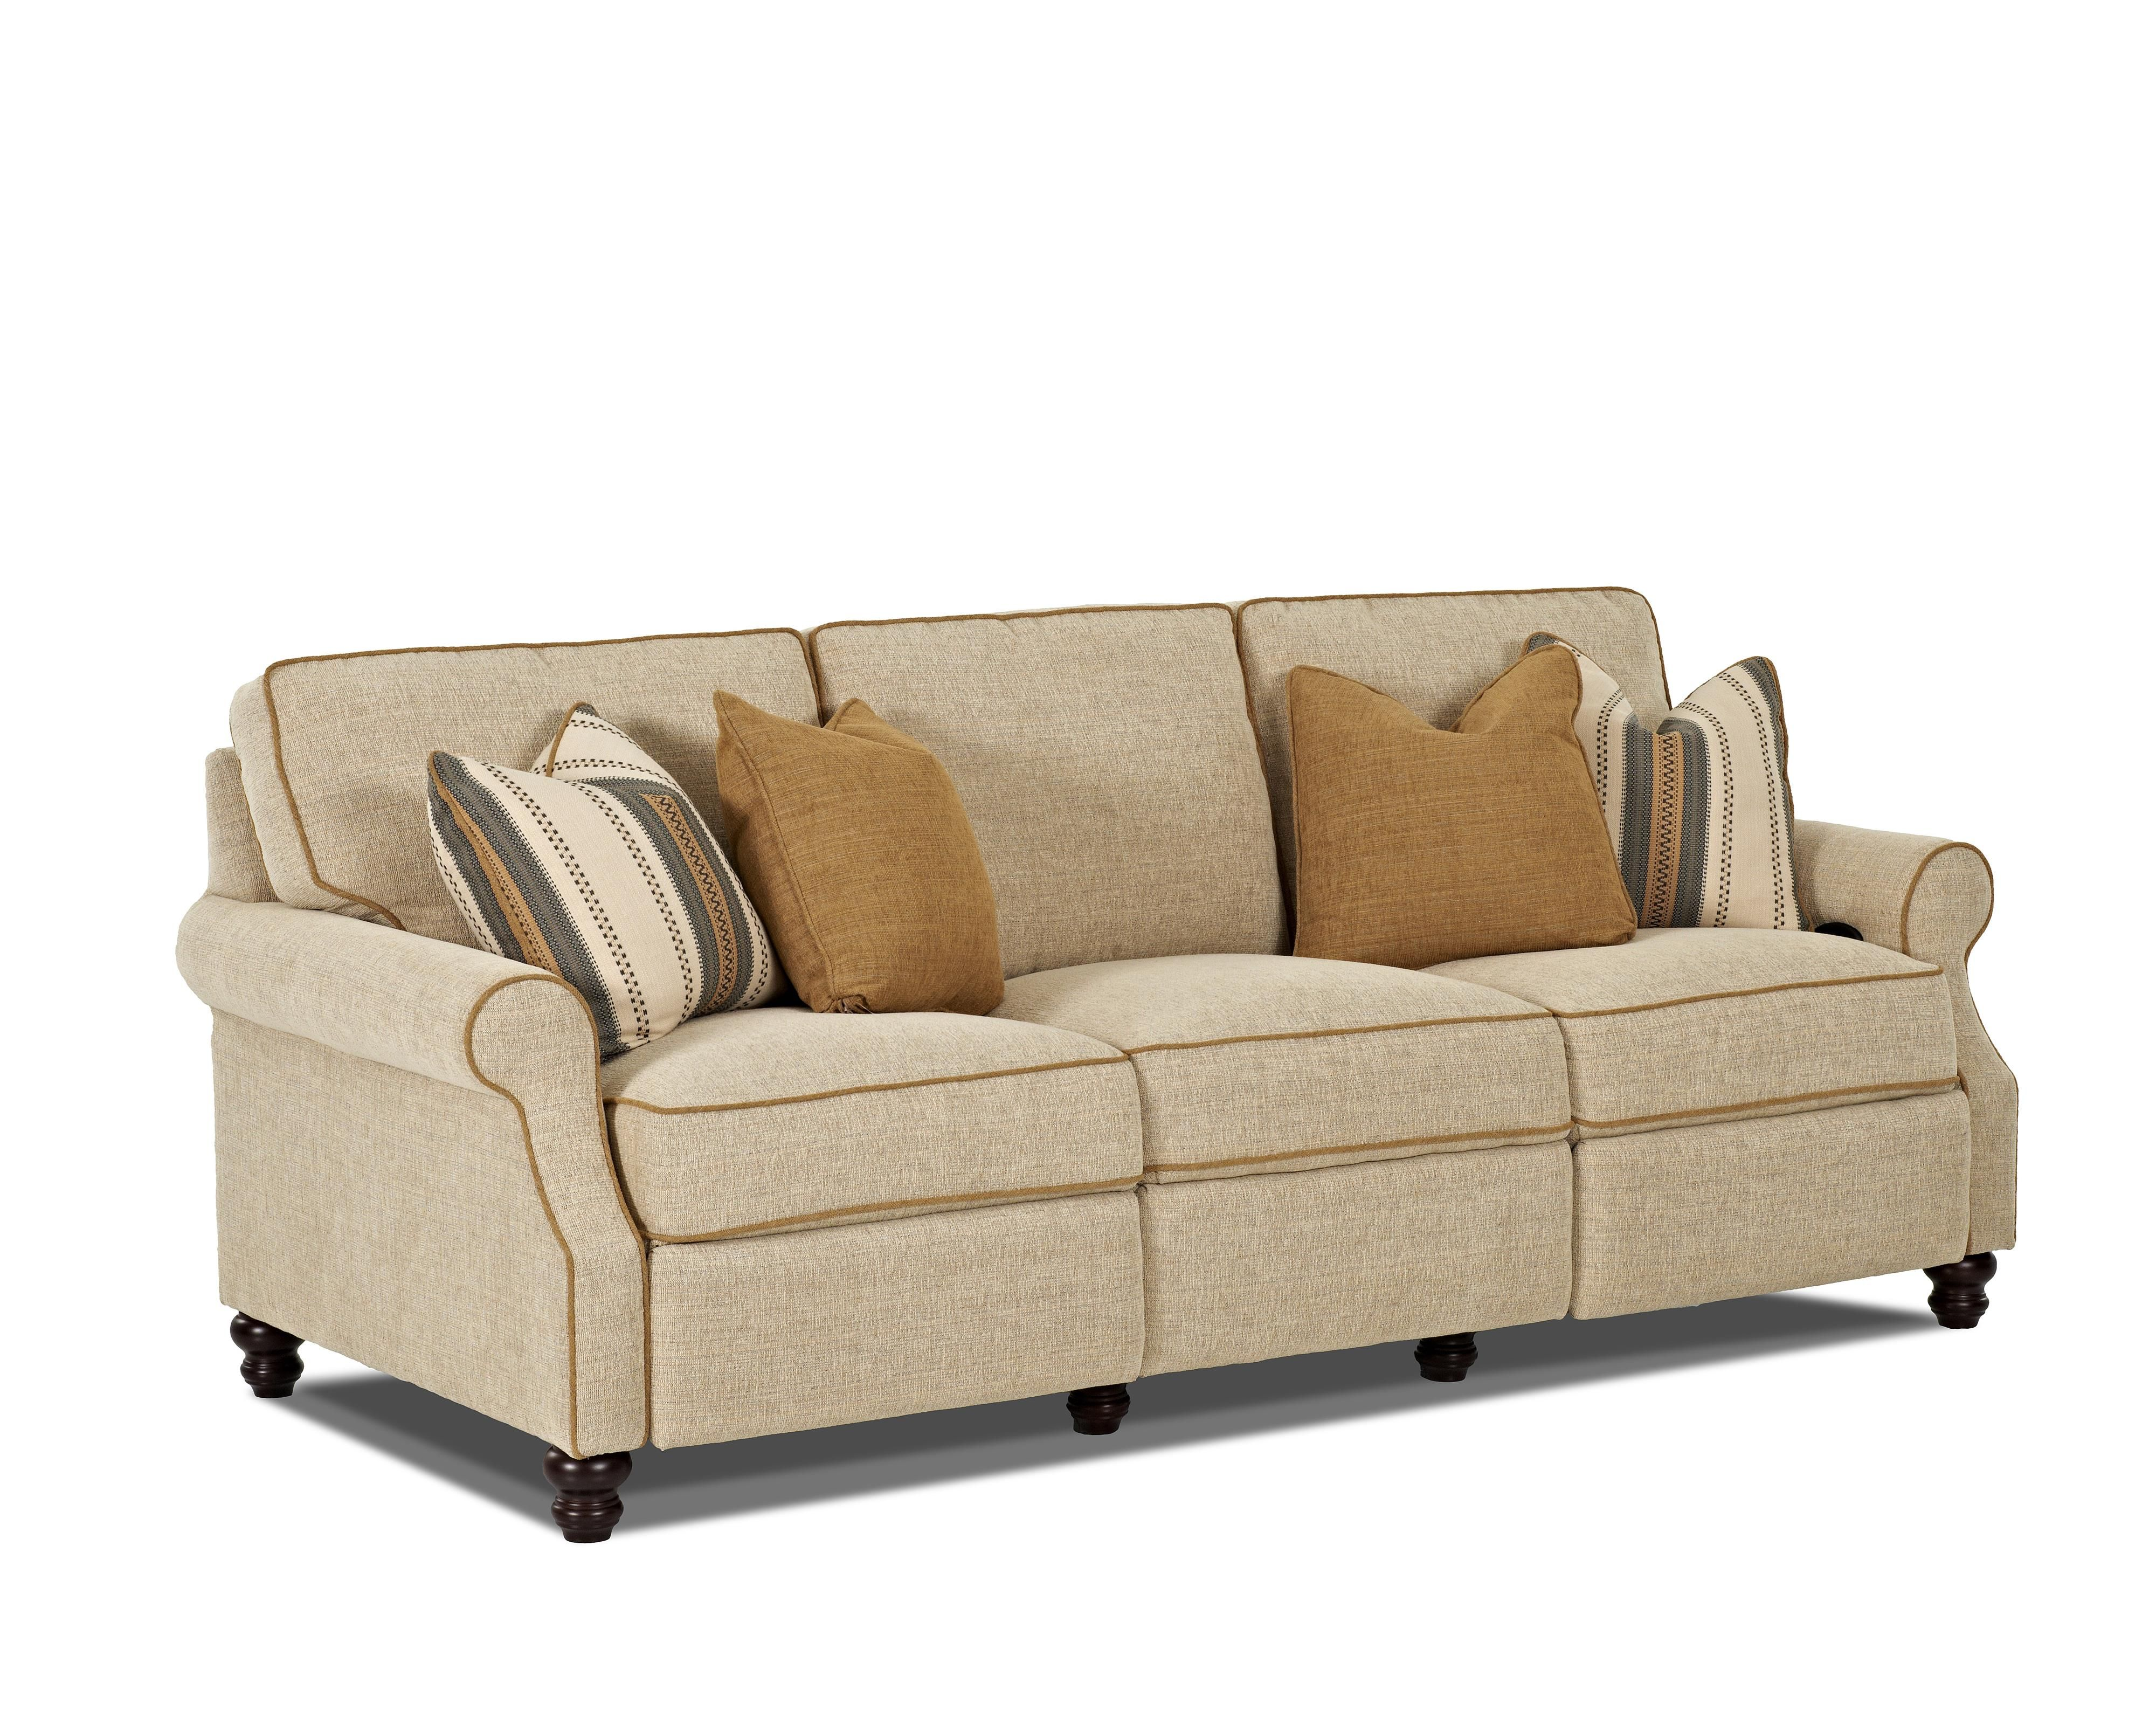 Tifton Traditional Power Reclining Sofa By Trisha Yearwood Home Collection  By Klaussner